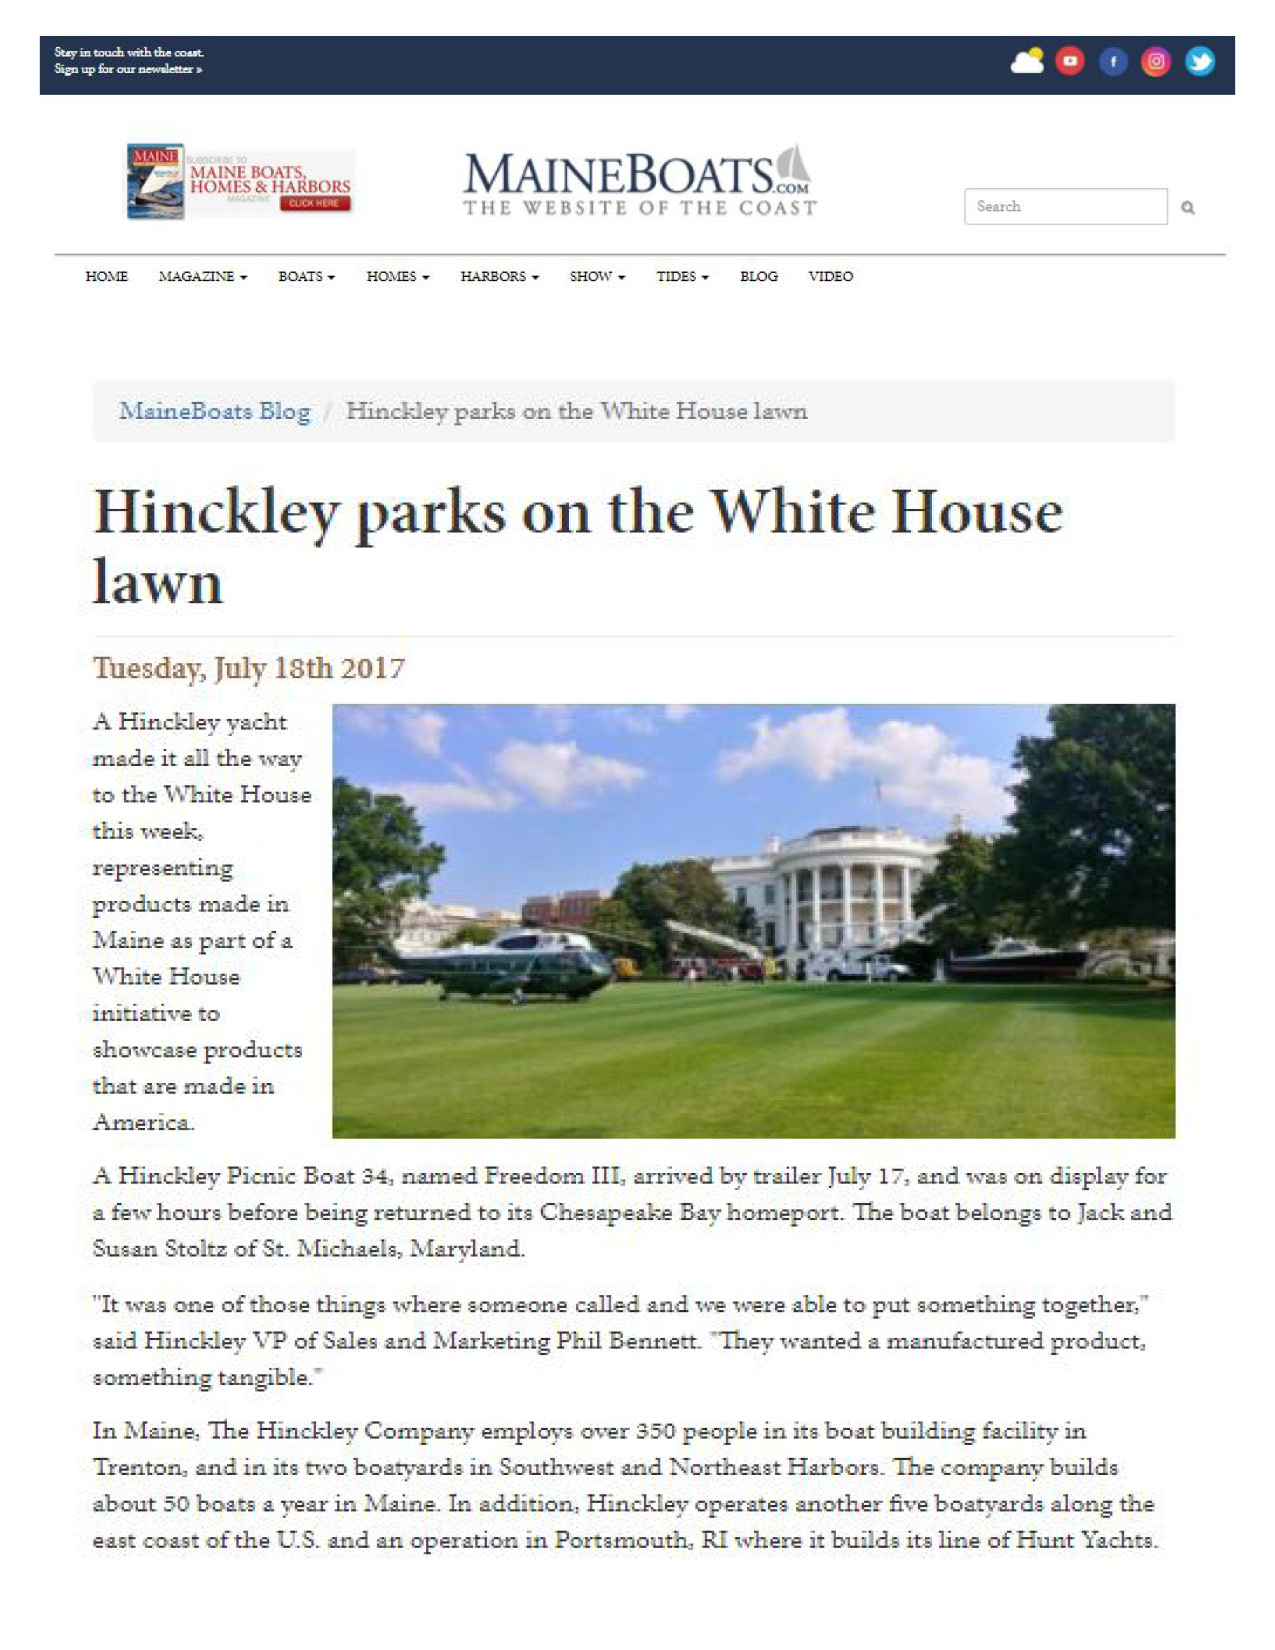 Hinckley Featured on Maine Boats Homes & Harbors